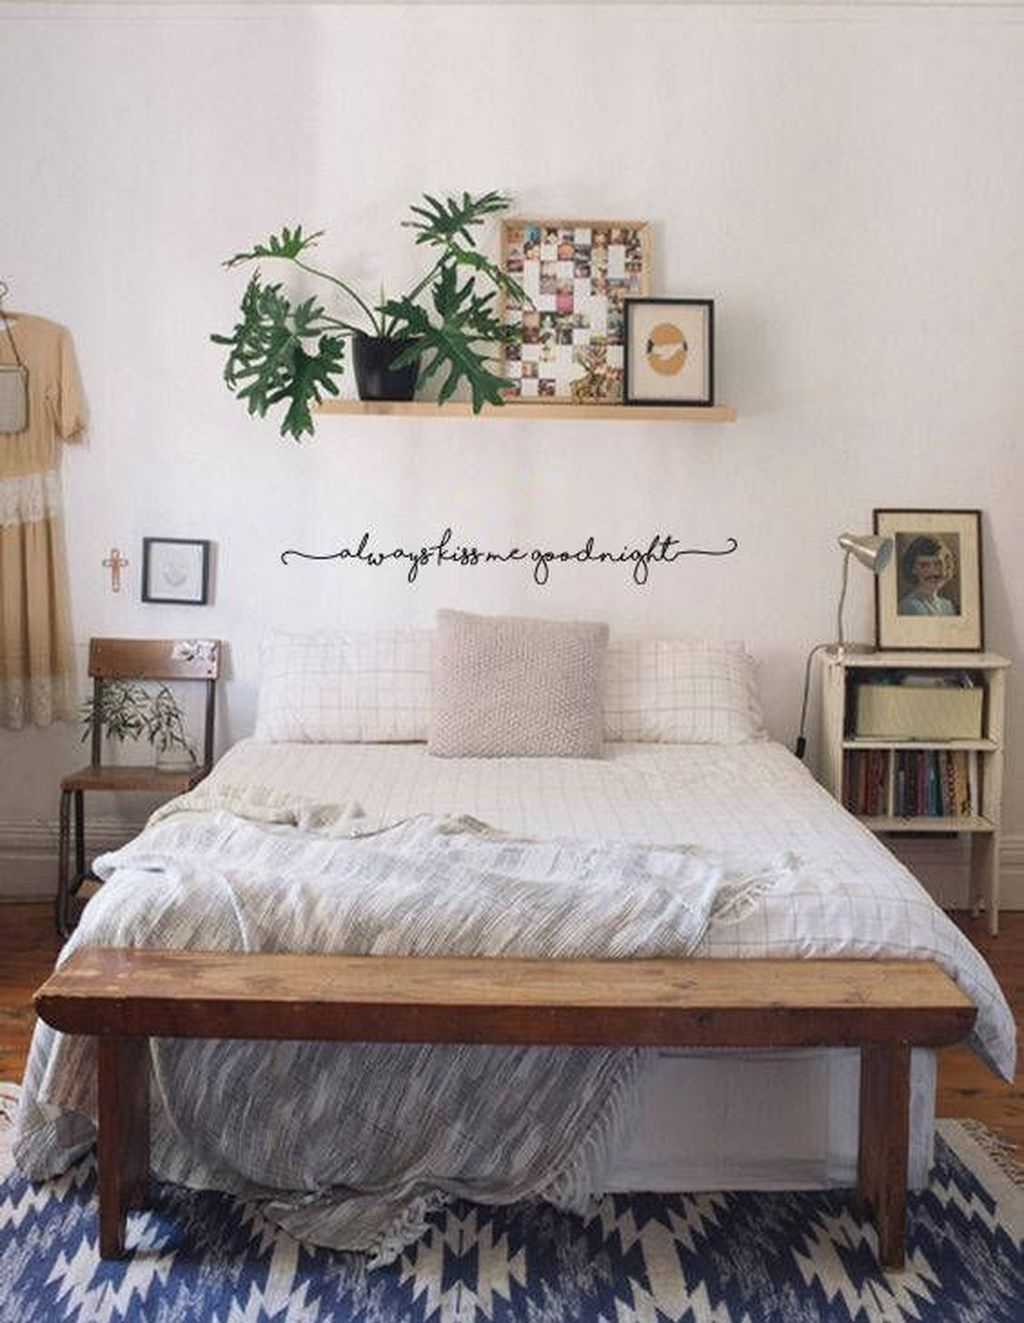 Admiring Bedroom Decor Ideas To Have Right Now 01